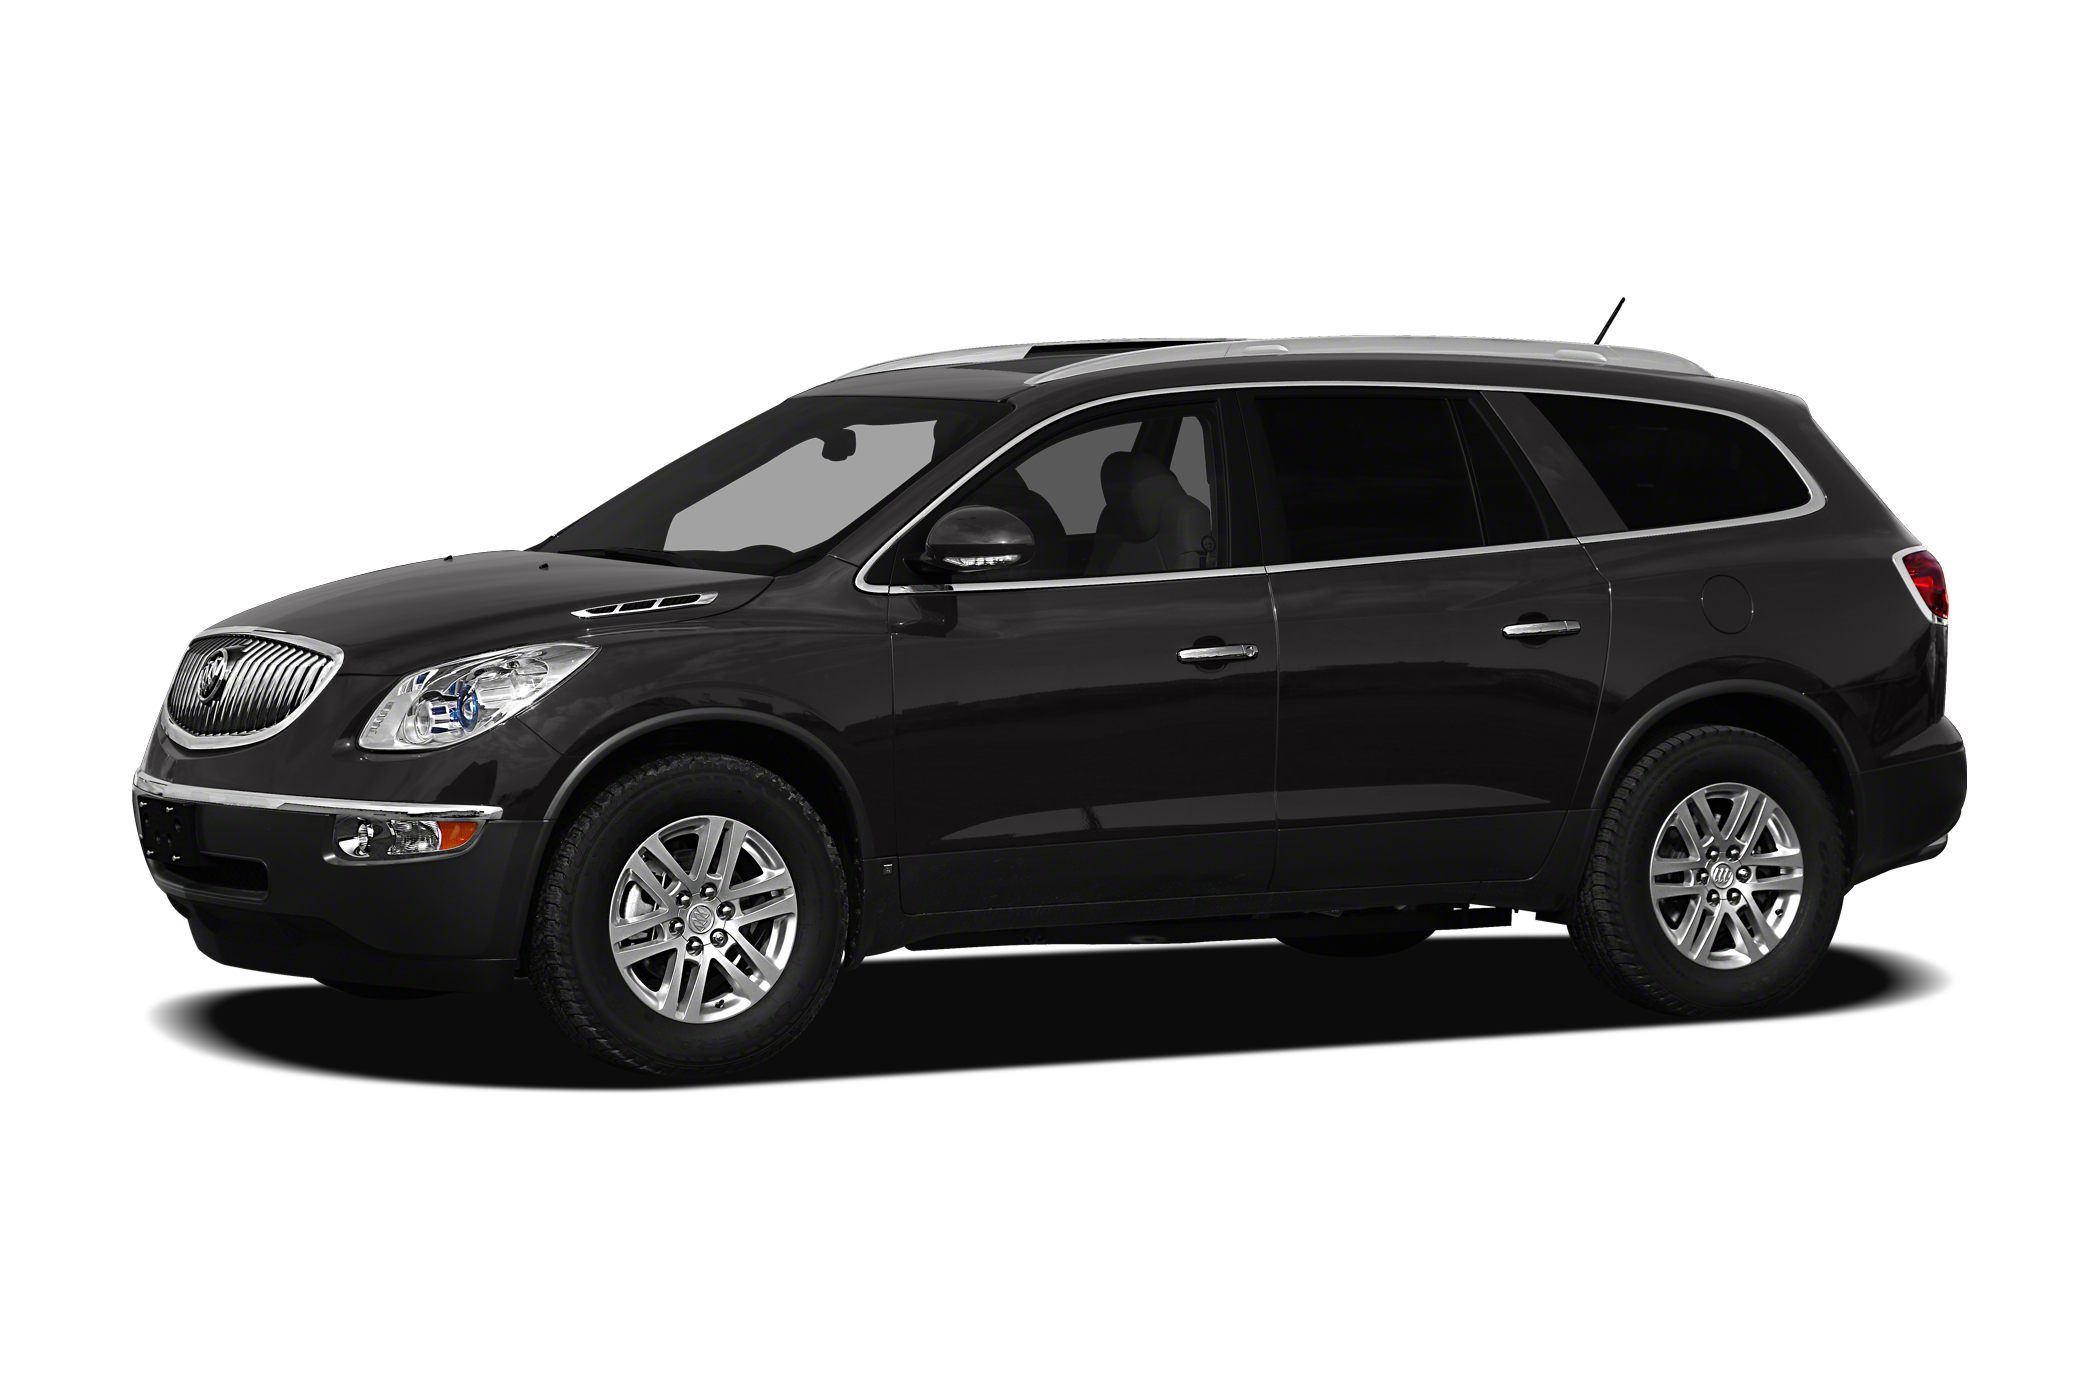 2012 Buick Enclave Premium SUV for sale in Maysville for $0 with 43,208 miles